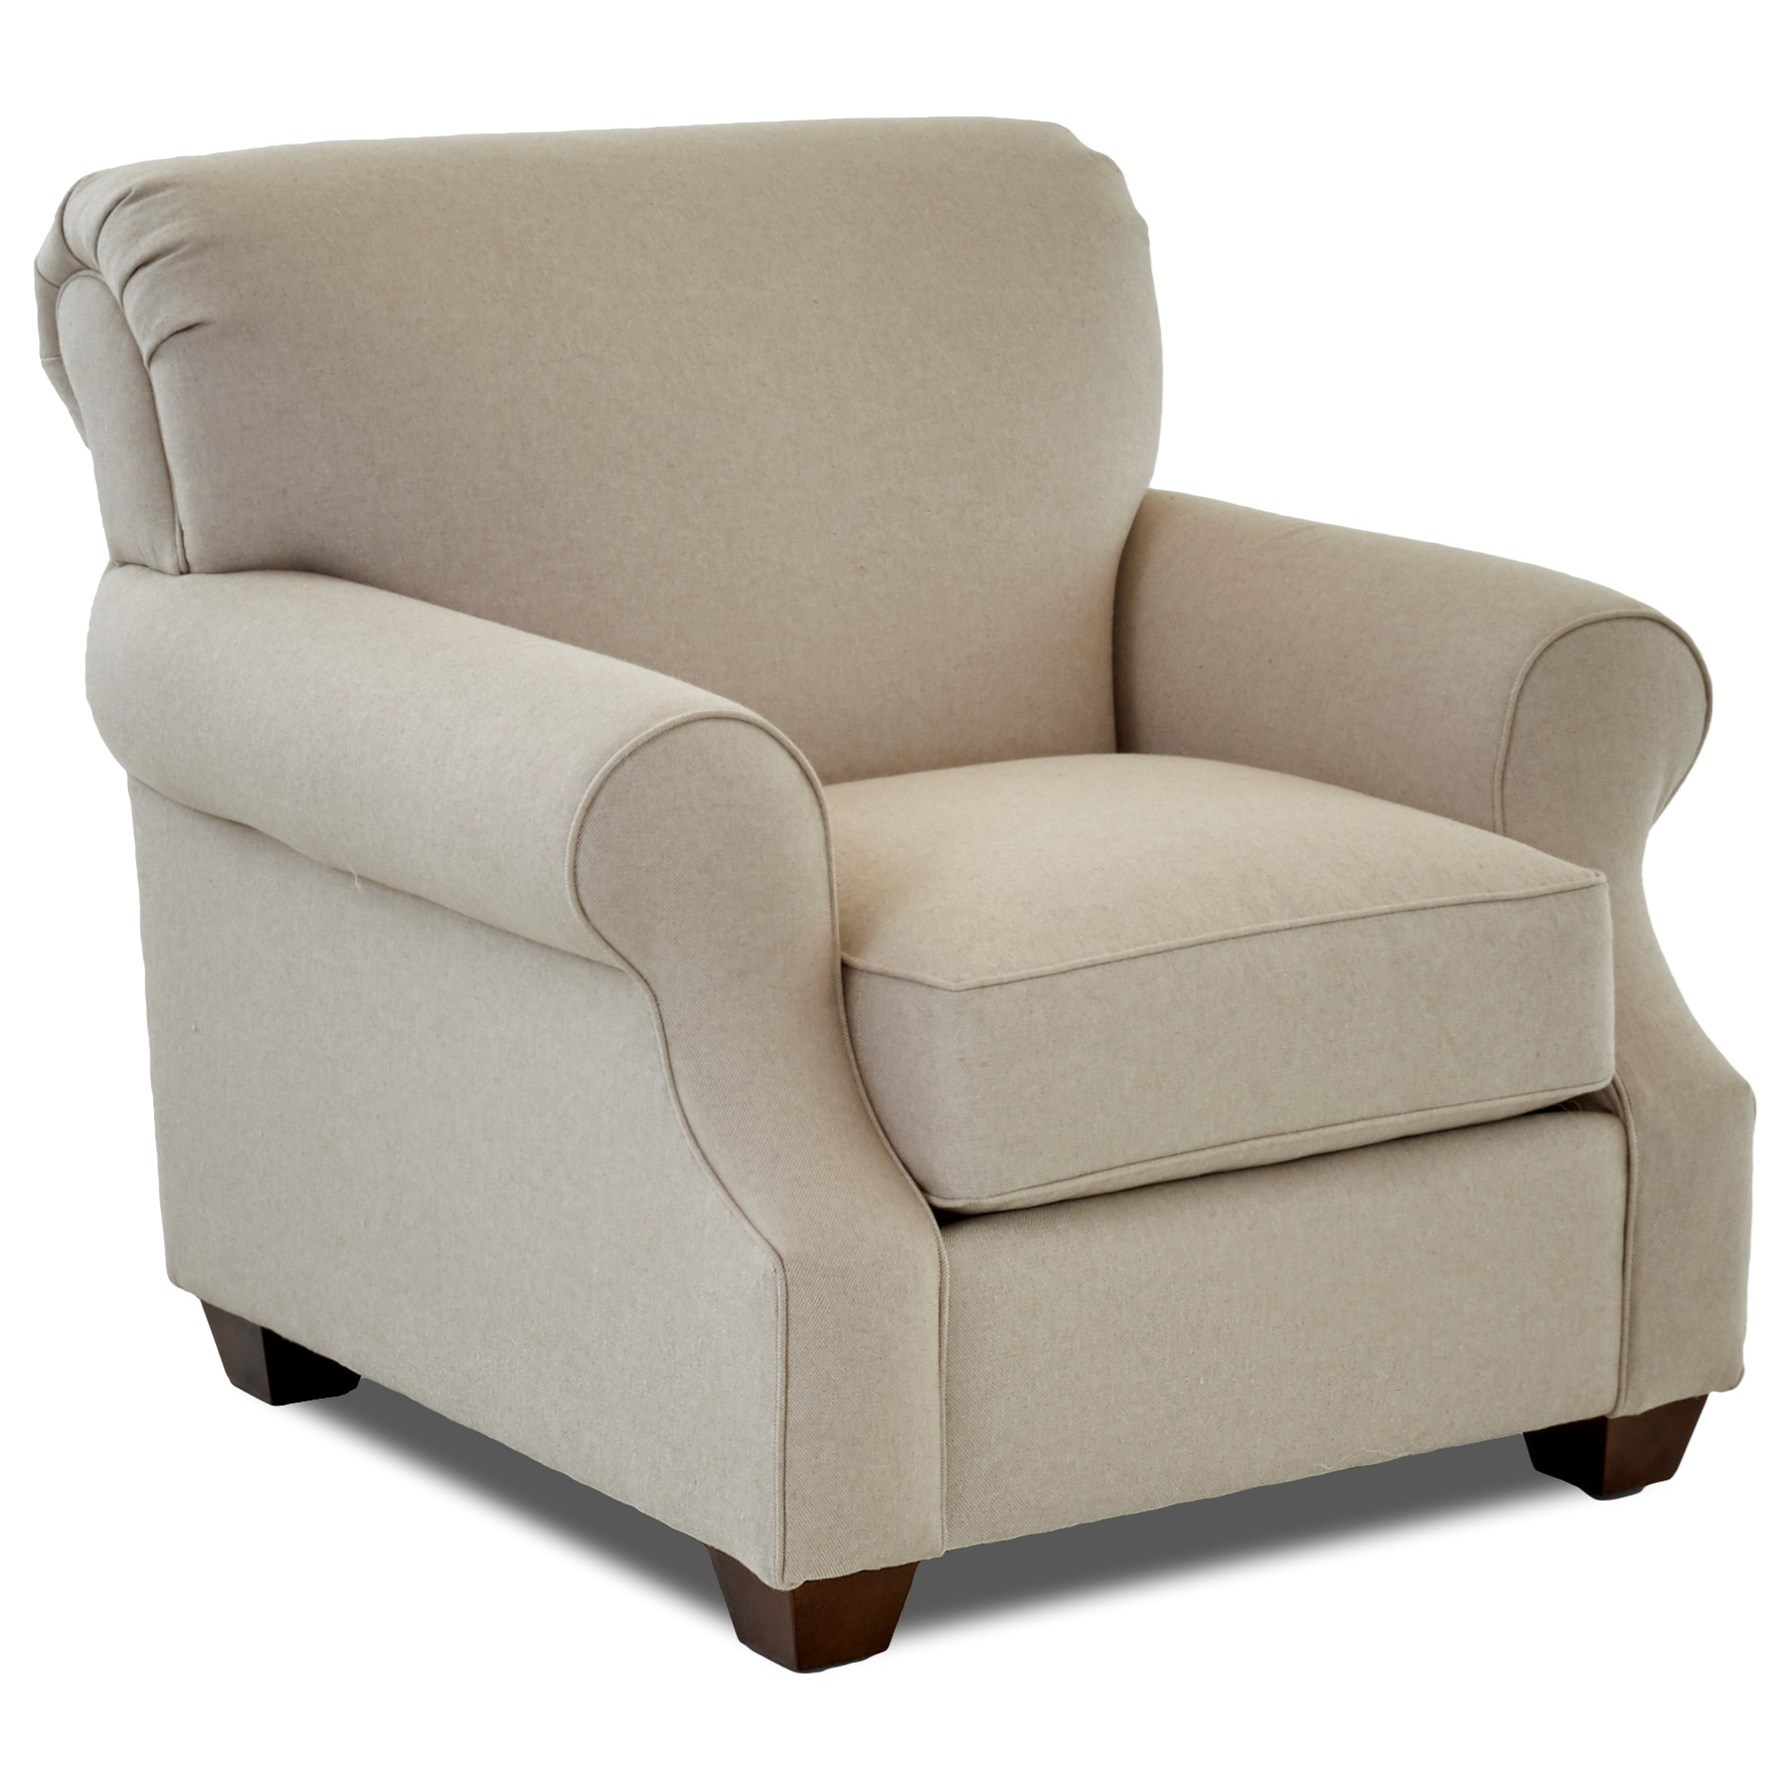 Casual Upholstered Chair